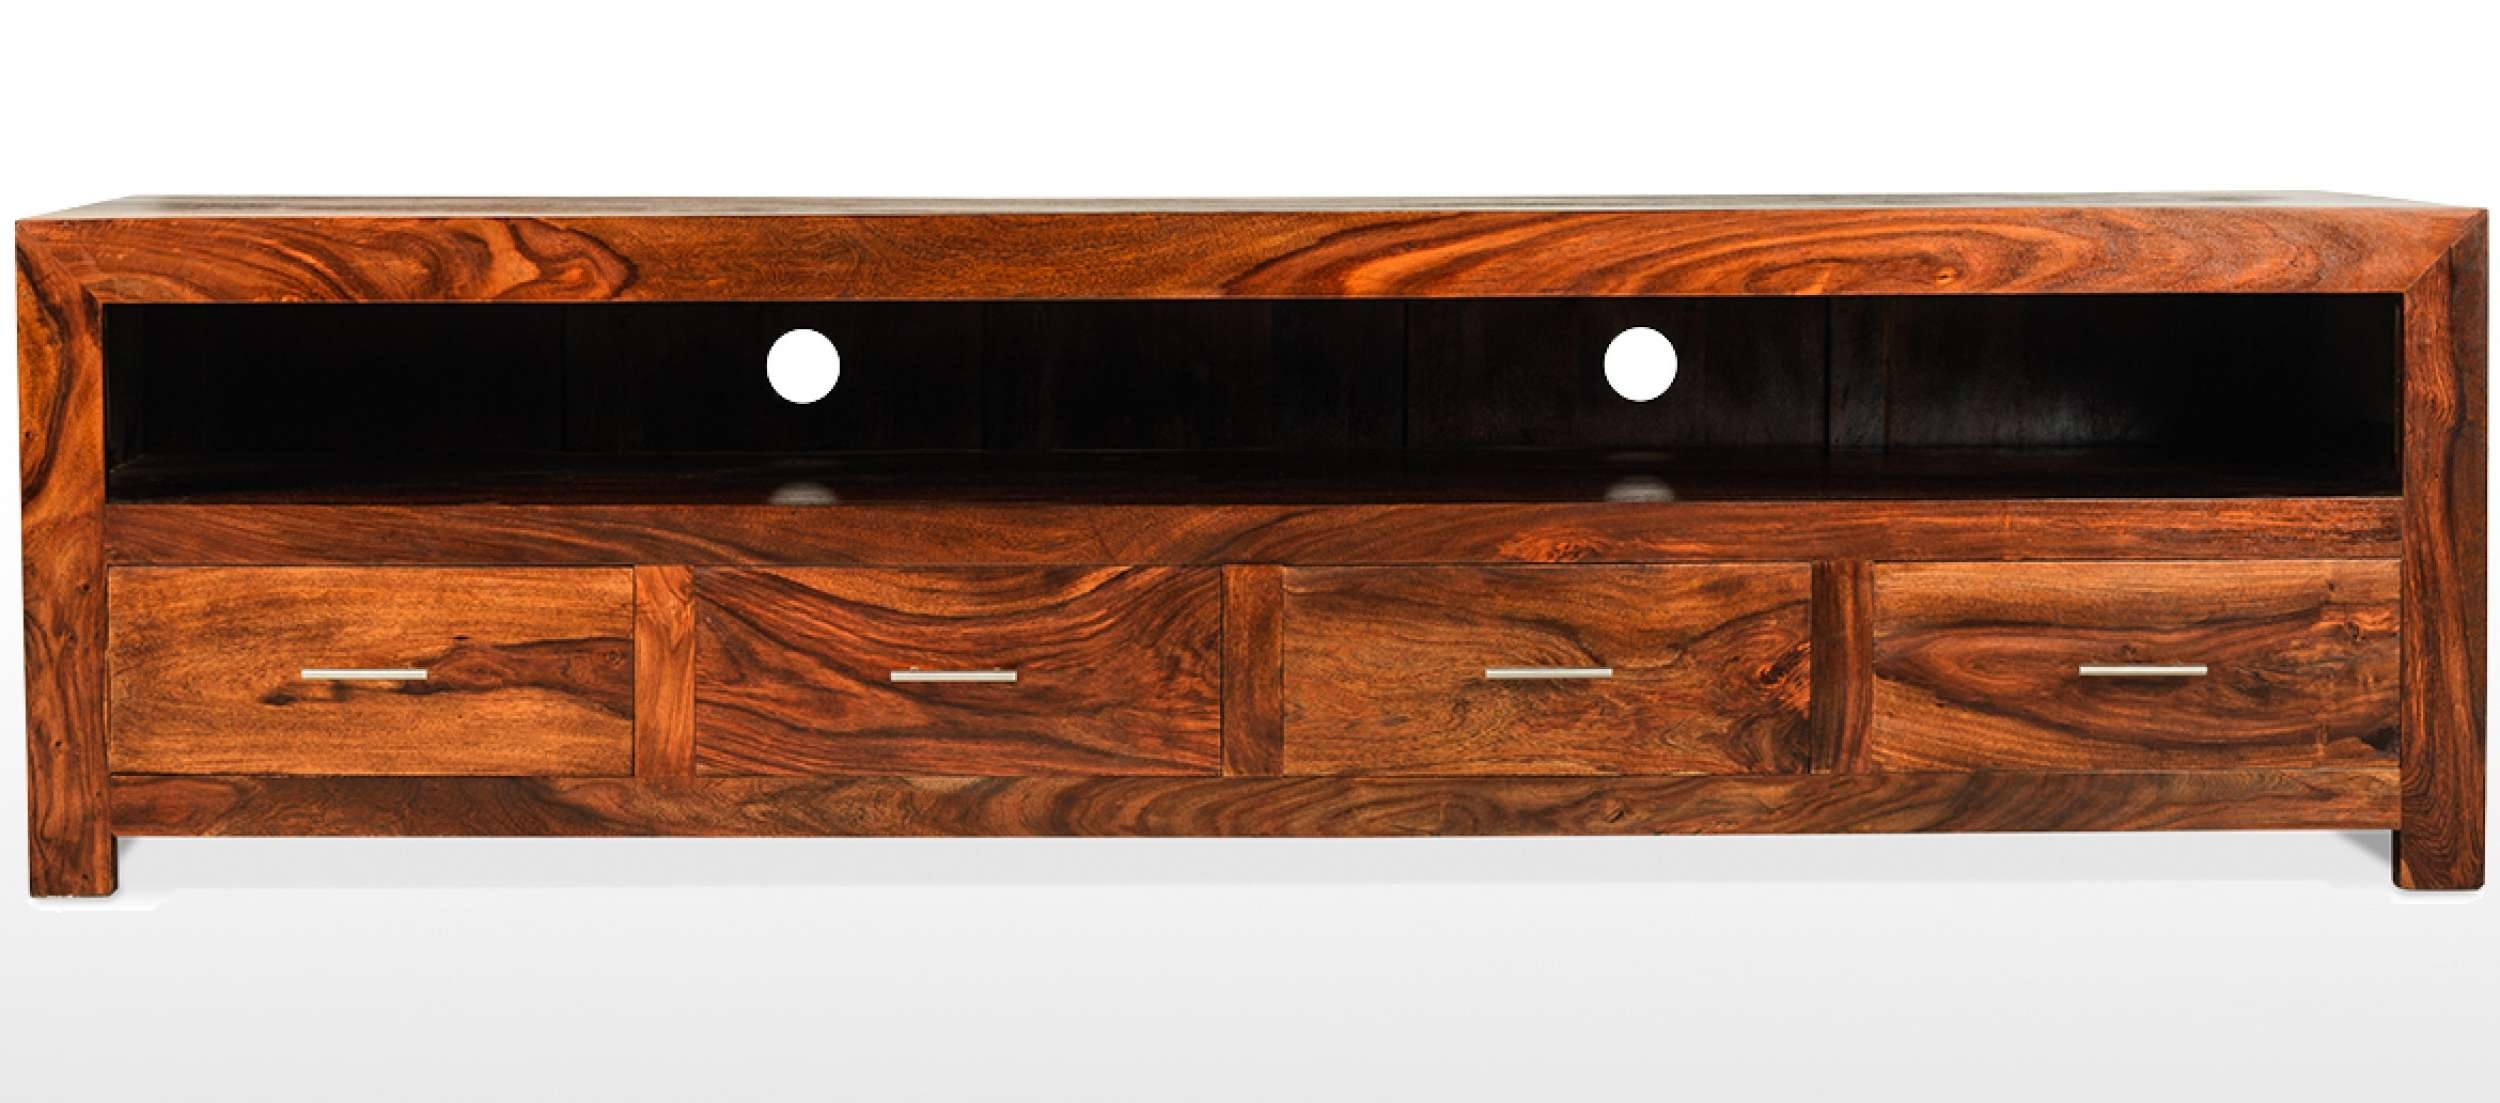 Sheesham Wood Tv Cabinet | Memsaheb Intended For Wooden Tv Cabinets (View 15 of 20)